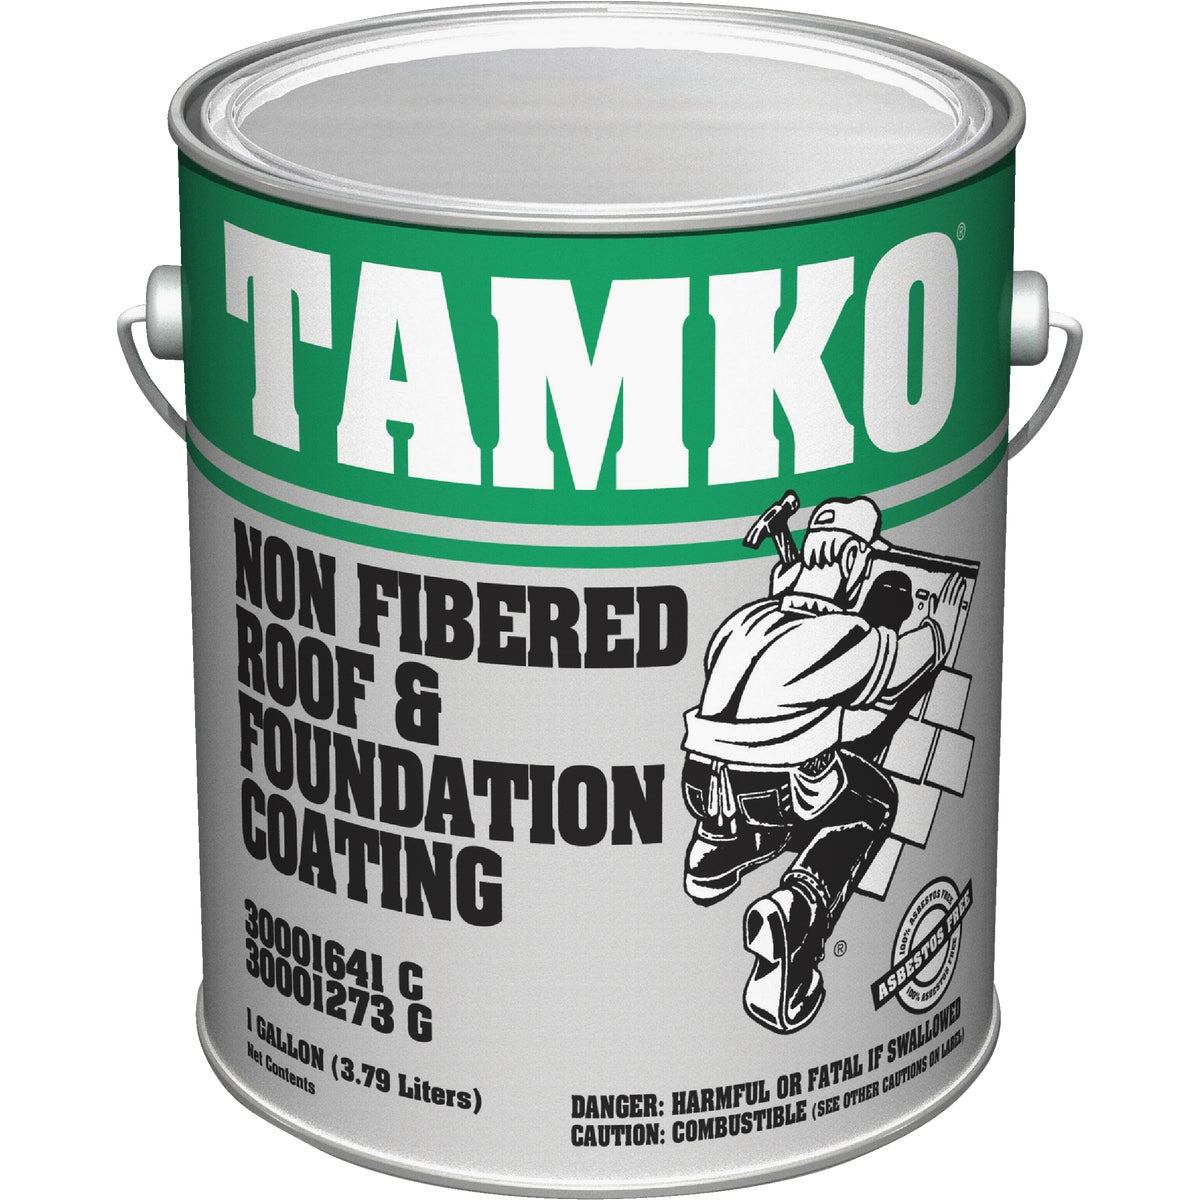 GAL RF/FOUNDATN COATING - 30001641 by Tamko Bldg Prod Inc